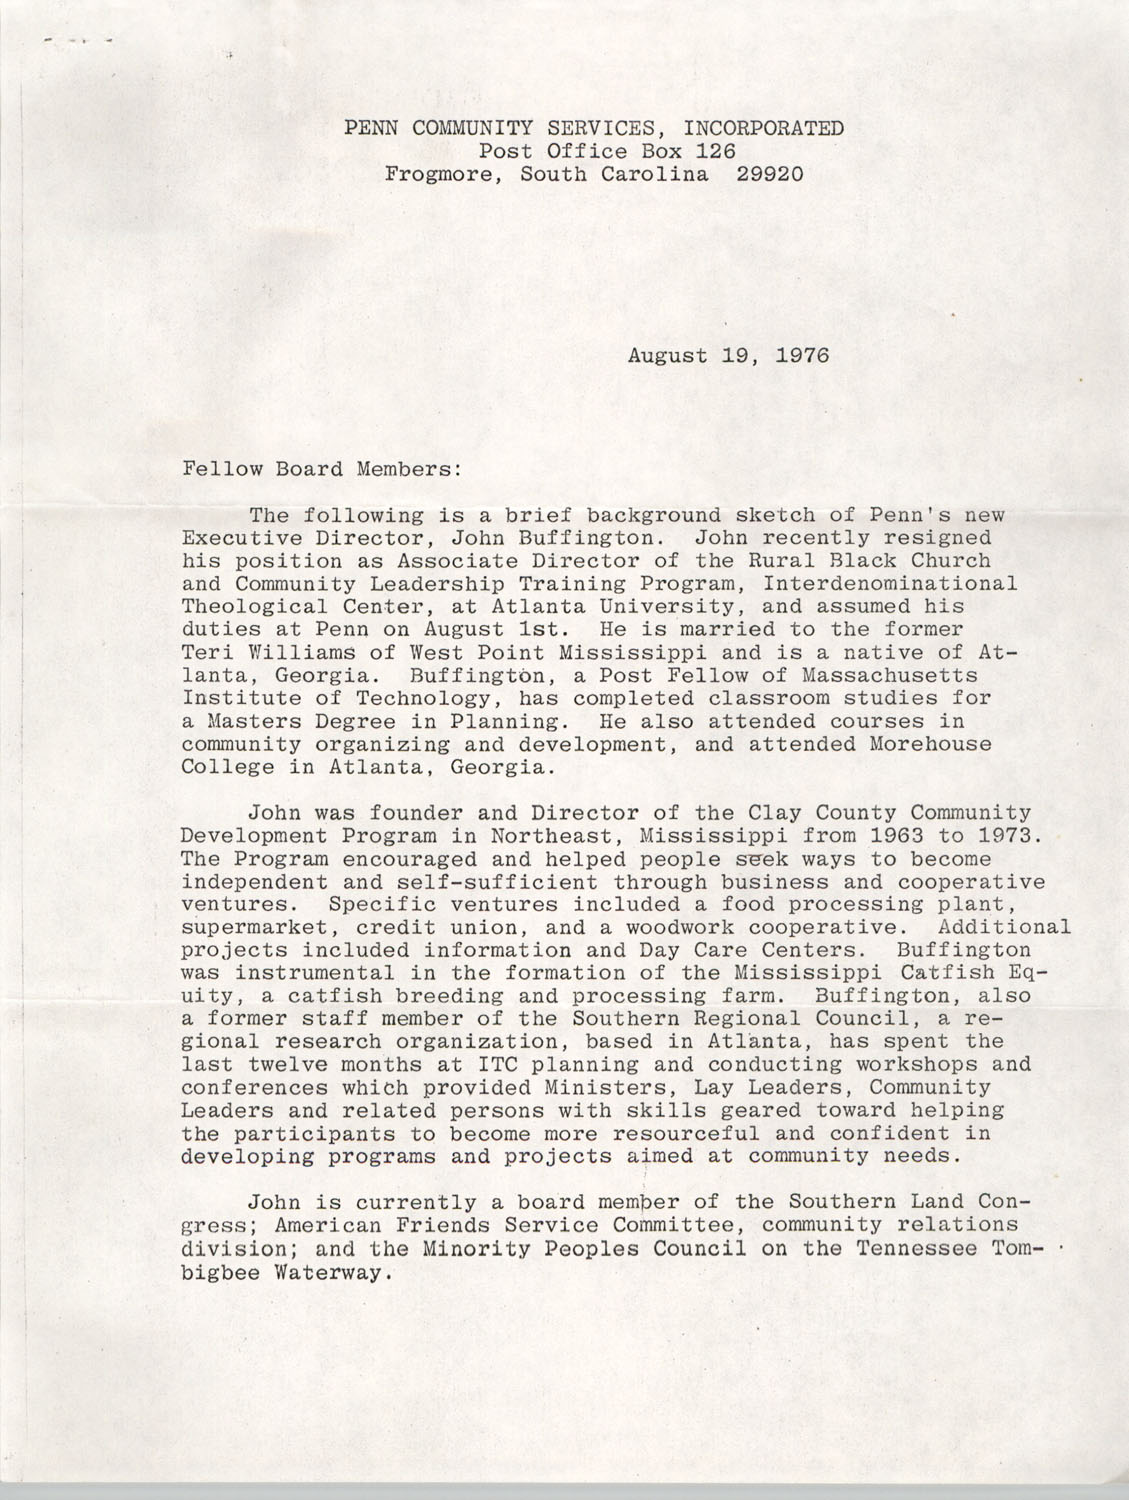 Letter from Penn Community Services Provost to Board member, August 19, 1976